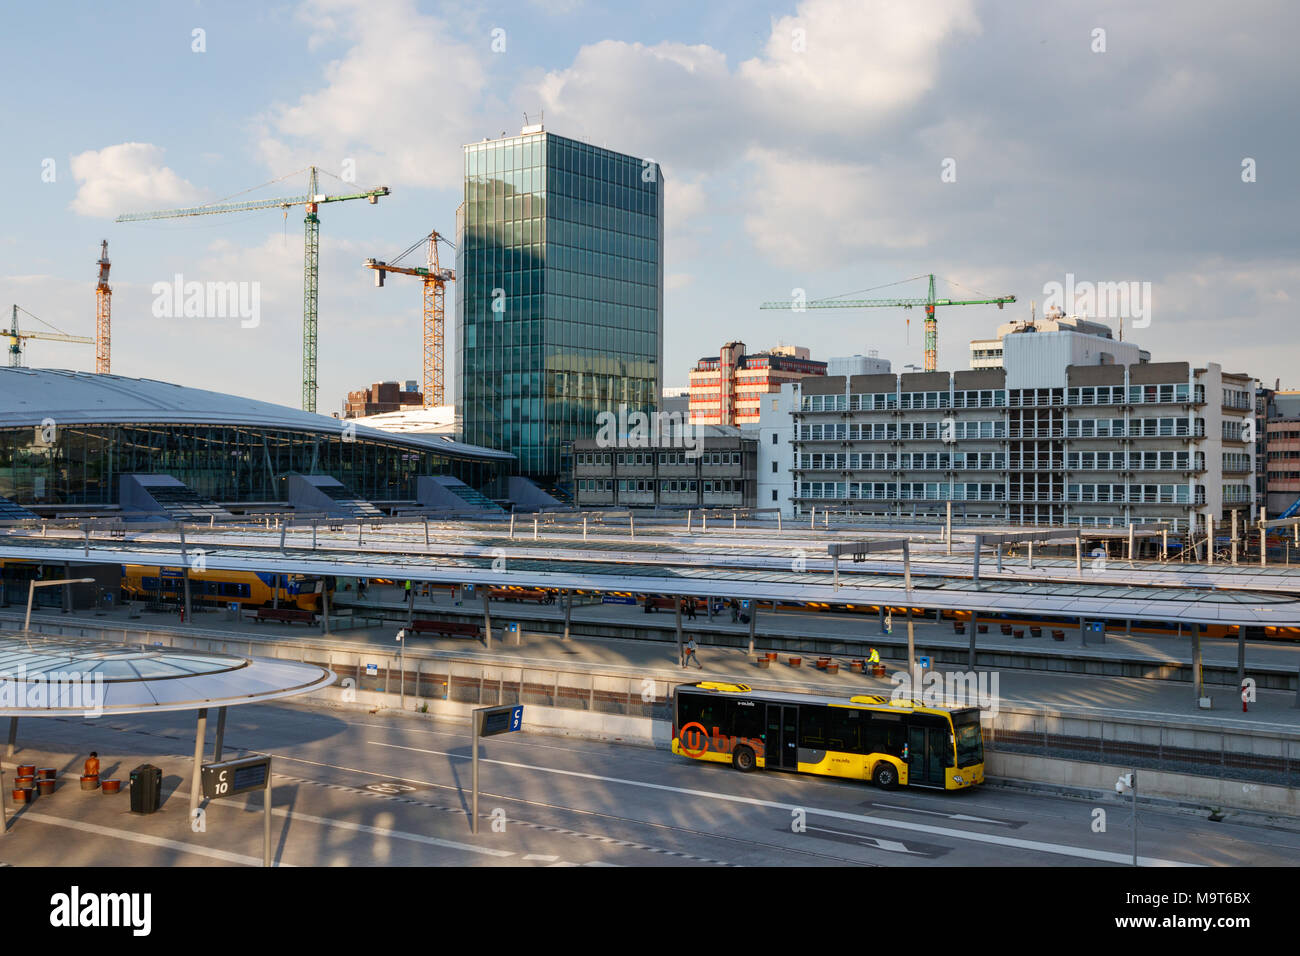 The NS hea quarters, platforms of Utrecht Centraal Railway Station and the bus station with a leaving bus on a sunny day.  Utrecht, The Netherlands. - Stock Image